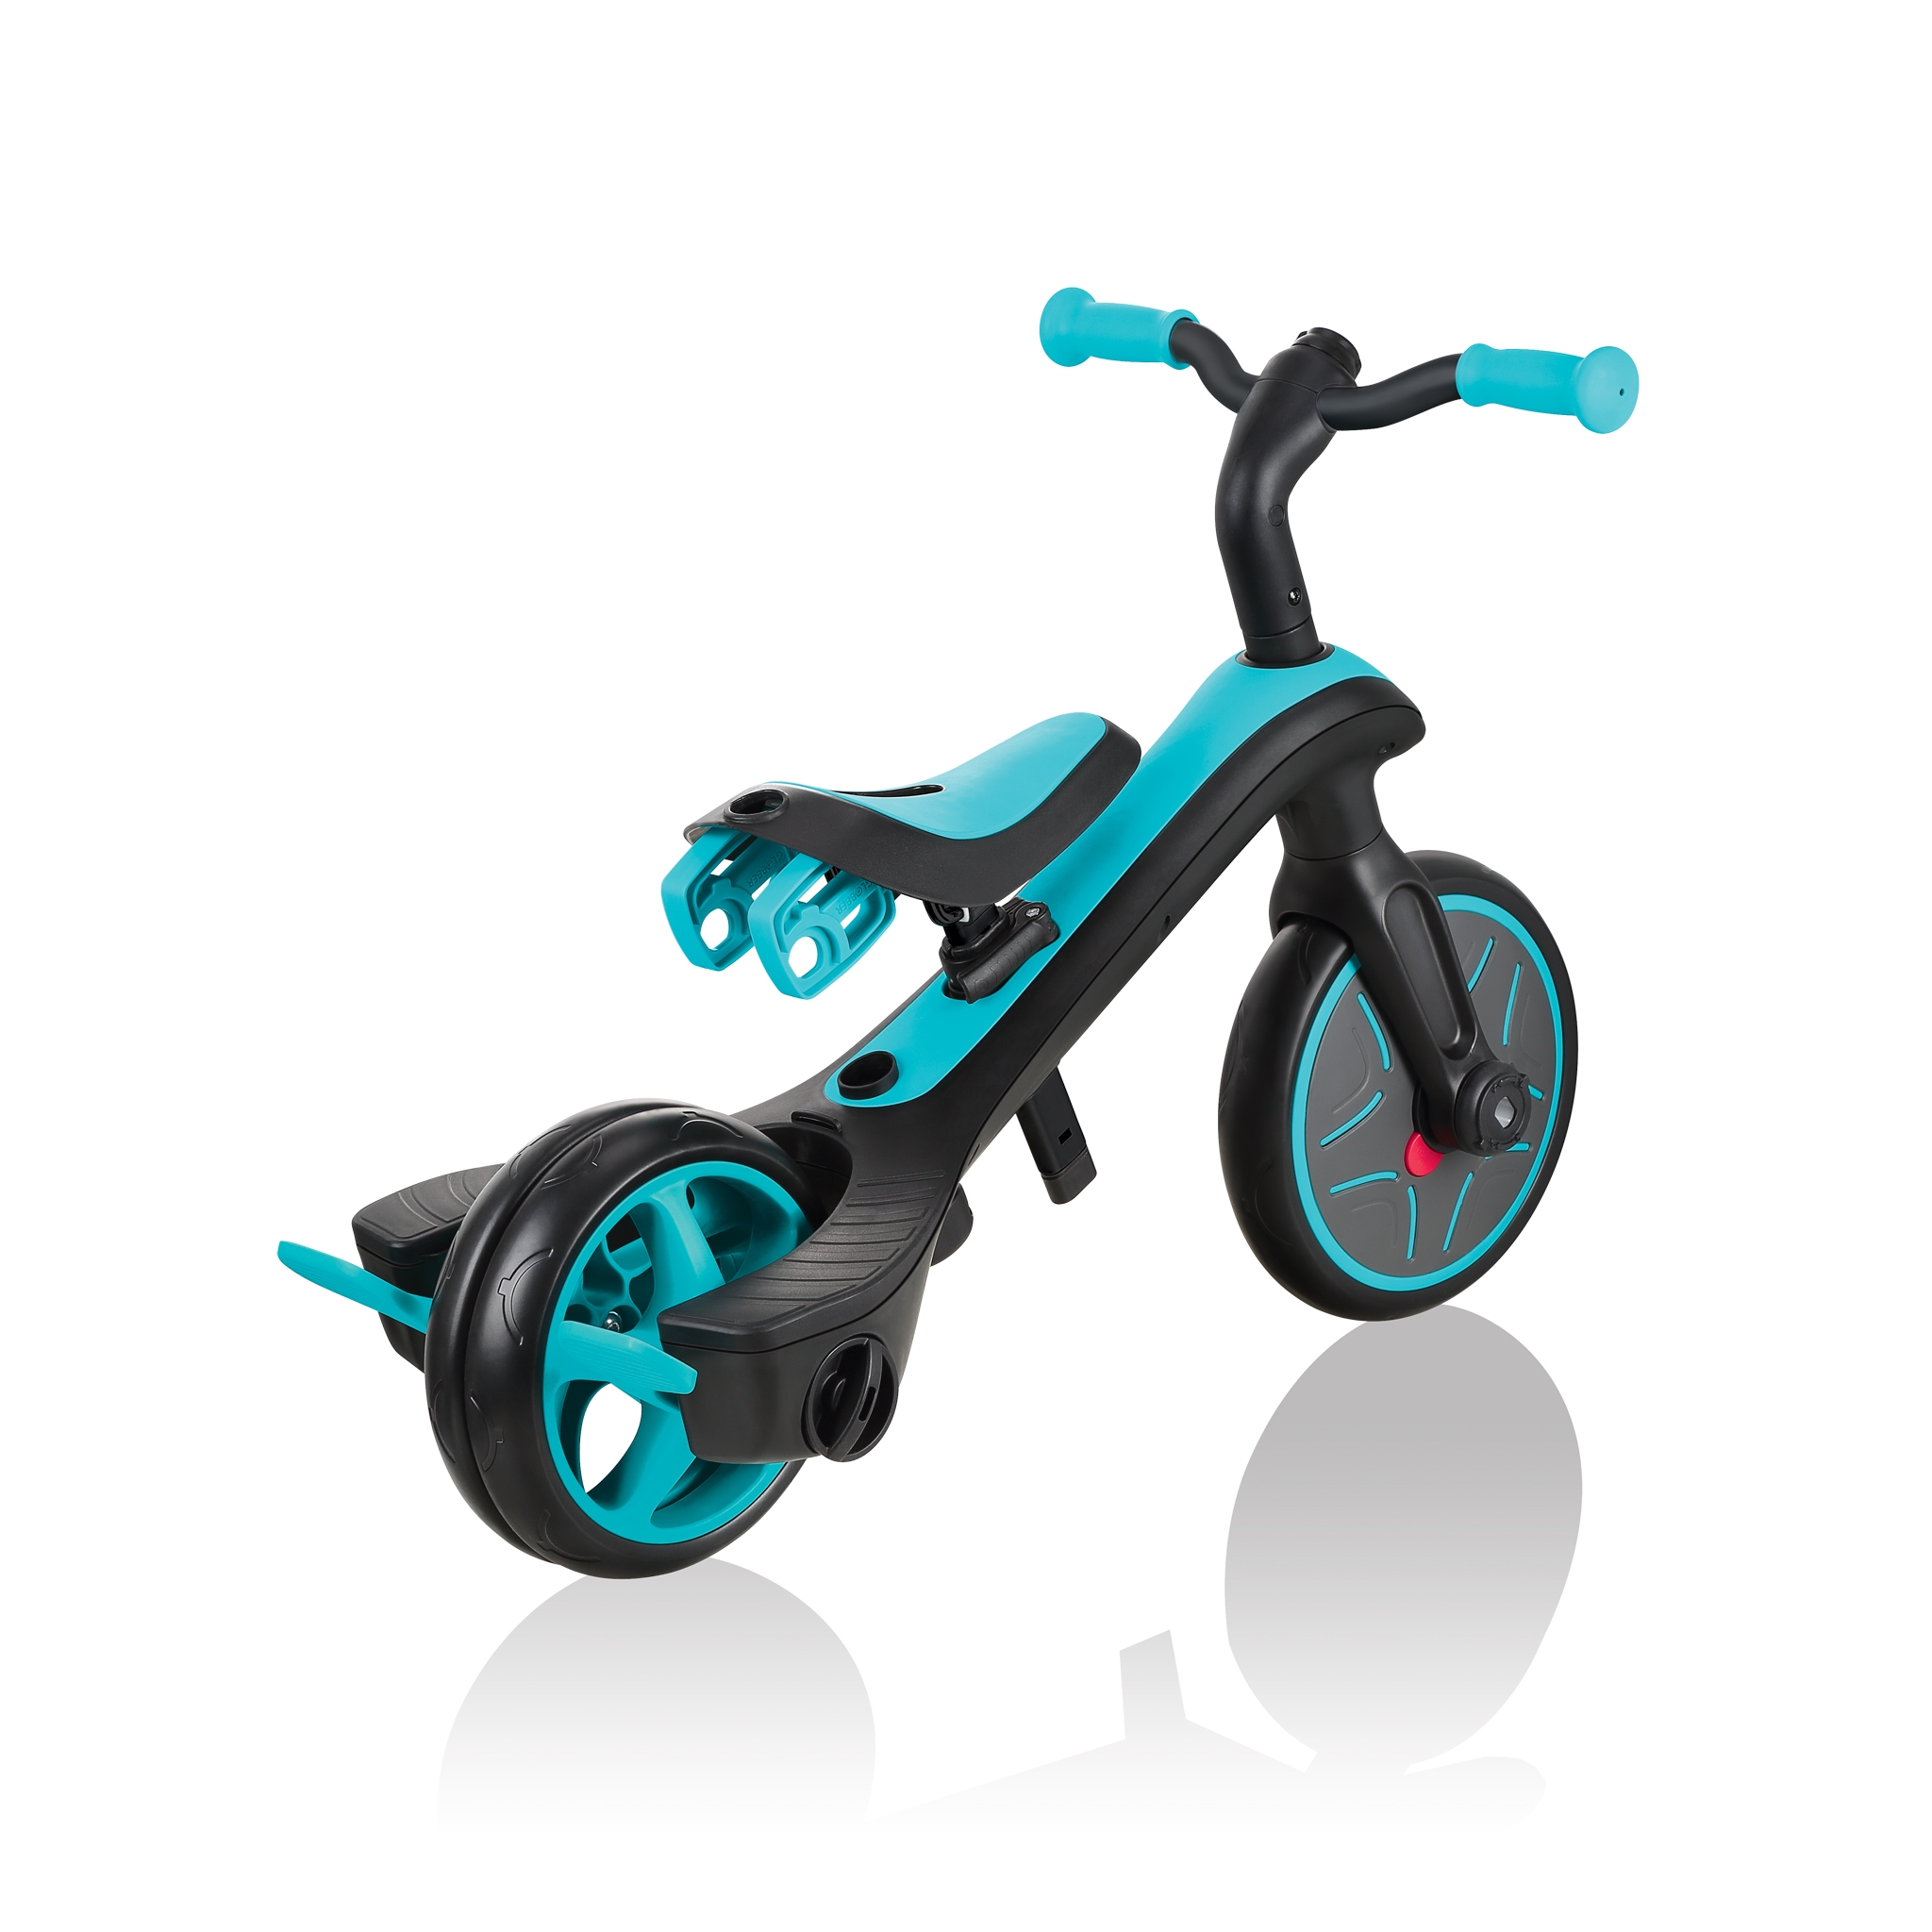 Globber-EXPLORER-TRIKE-3in1-all-in-one-baby-tricycle-and-kids-balance-bike-with-smart-pedal-storage_teal 6